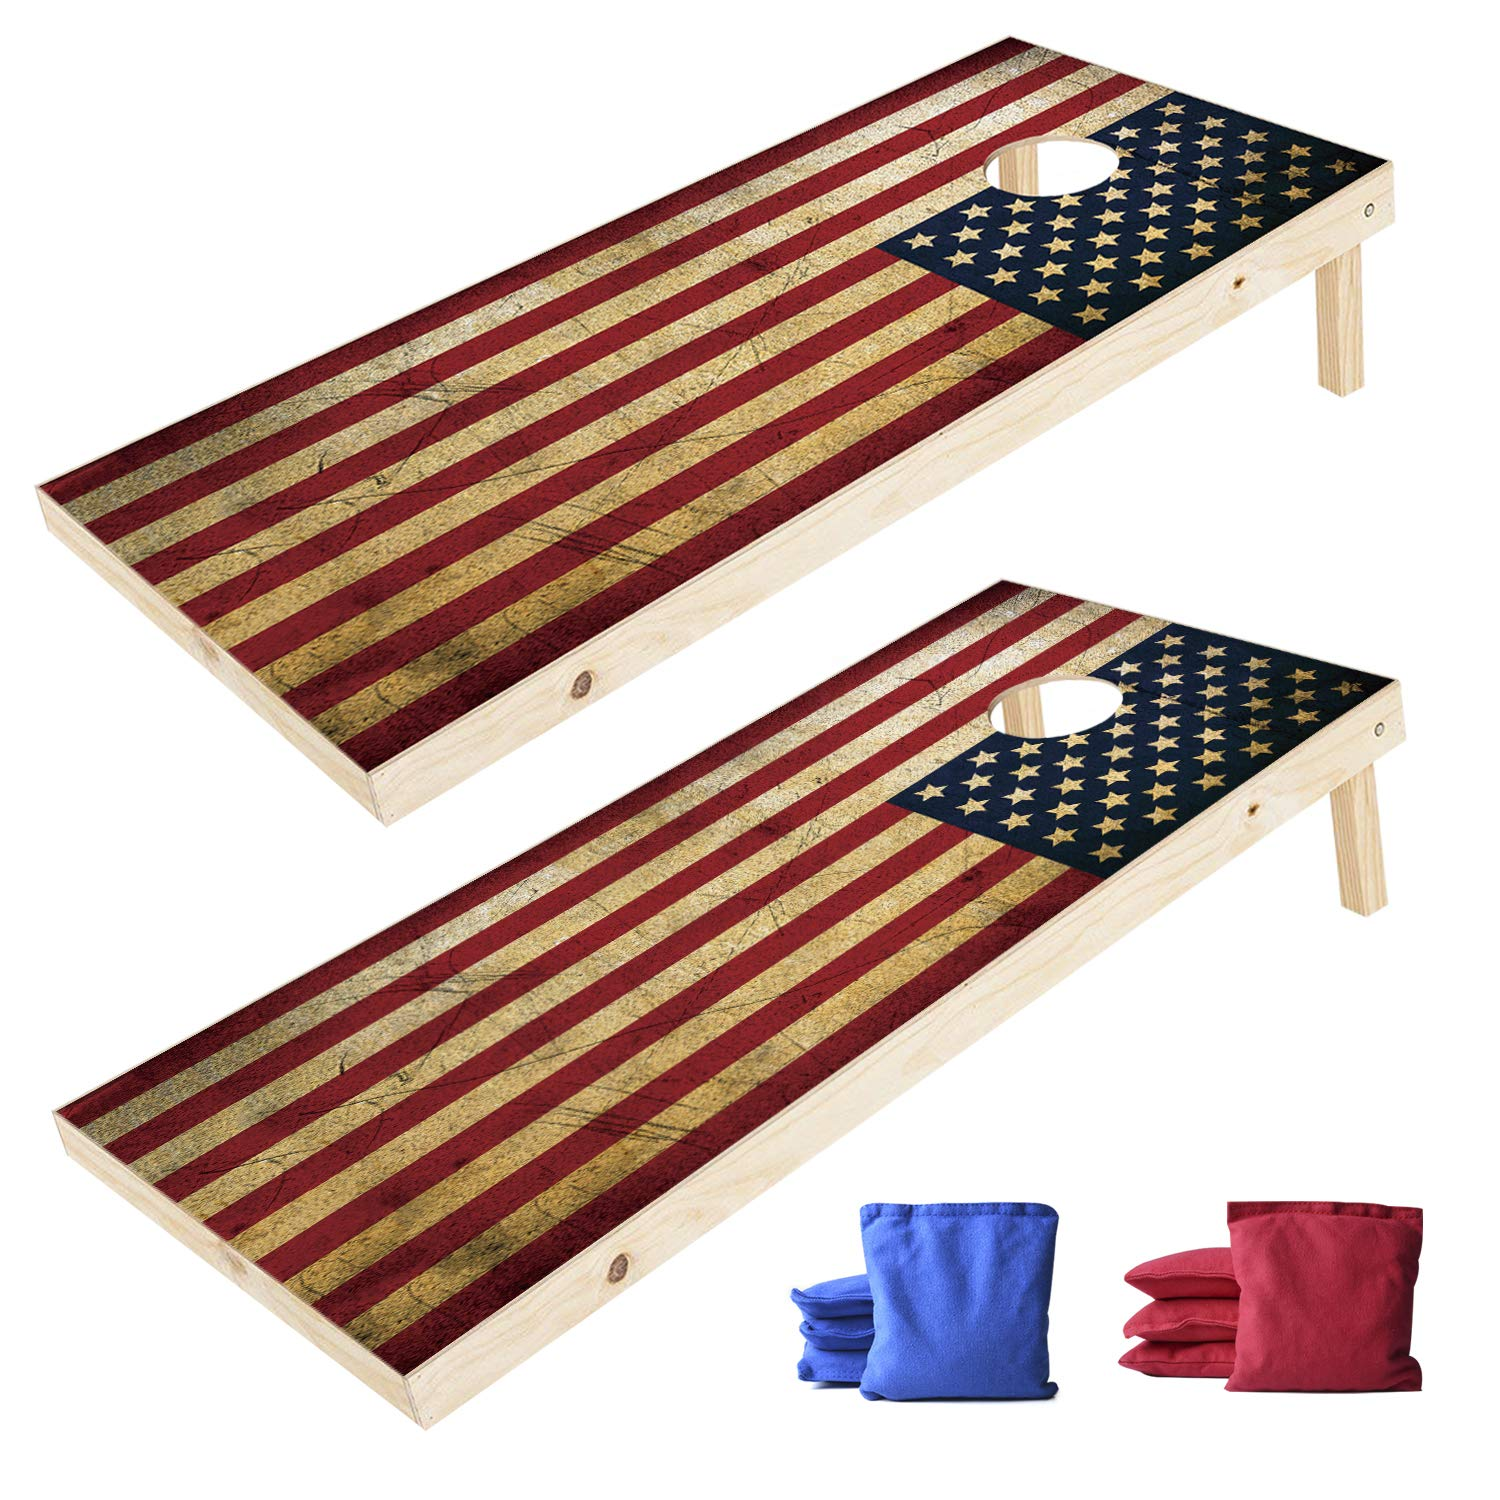 EXERCISE N PLAY 2 x 4 Ft Regulation Size Wood Corn Hole Board Game, American Flag Cornhole Boards, Includes 8 Cornhole Bean Bags Set(4 Red,4 Blue)